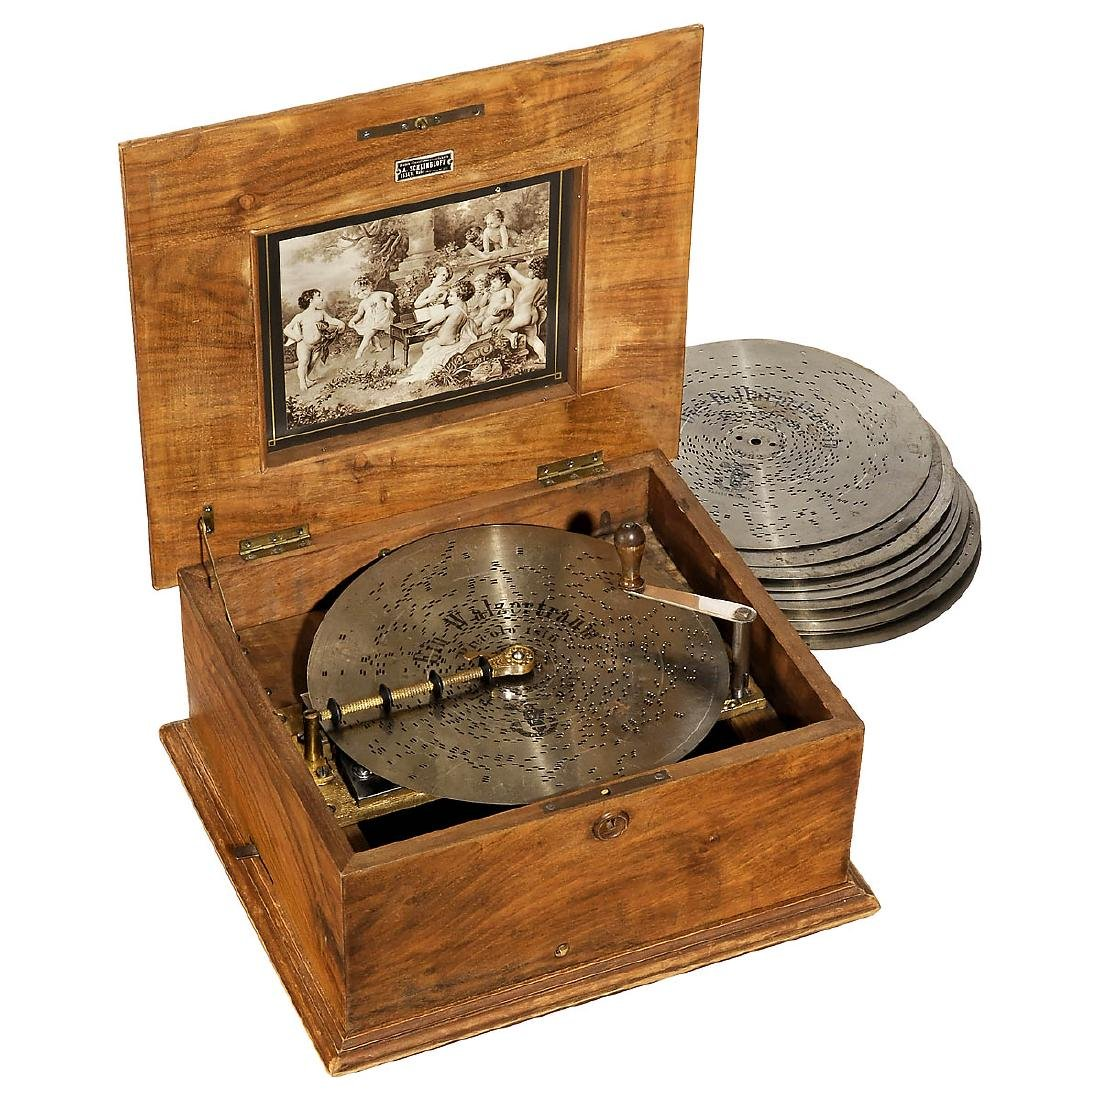 Polyphon No. 42D Disc Musical Box, c. 1910